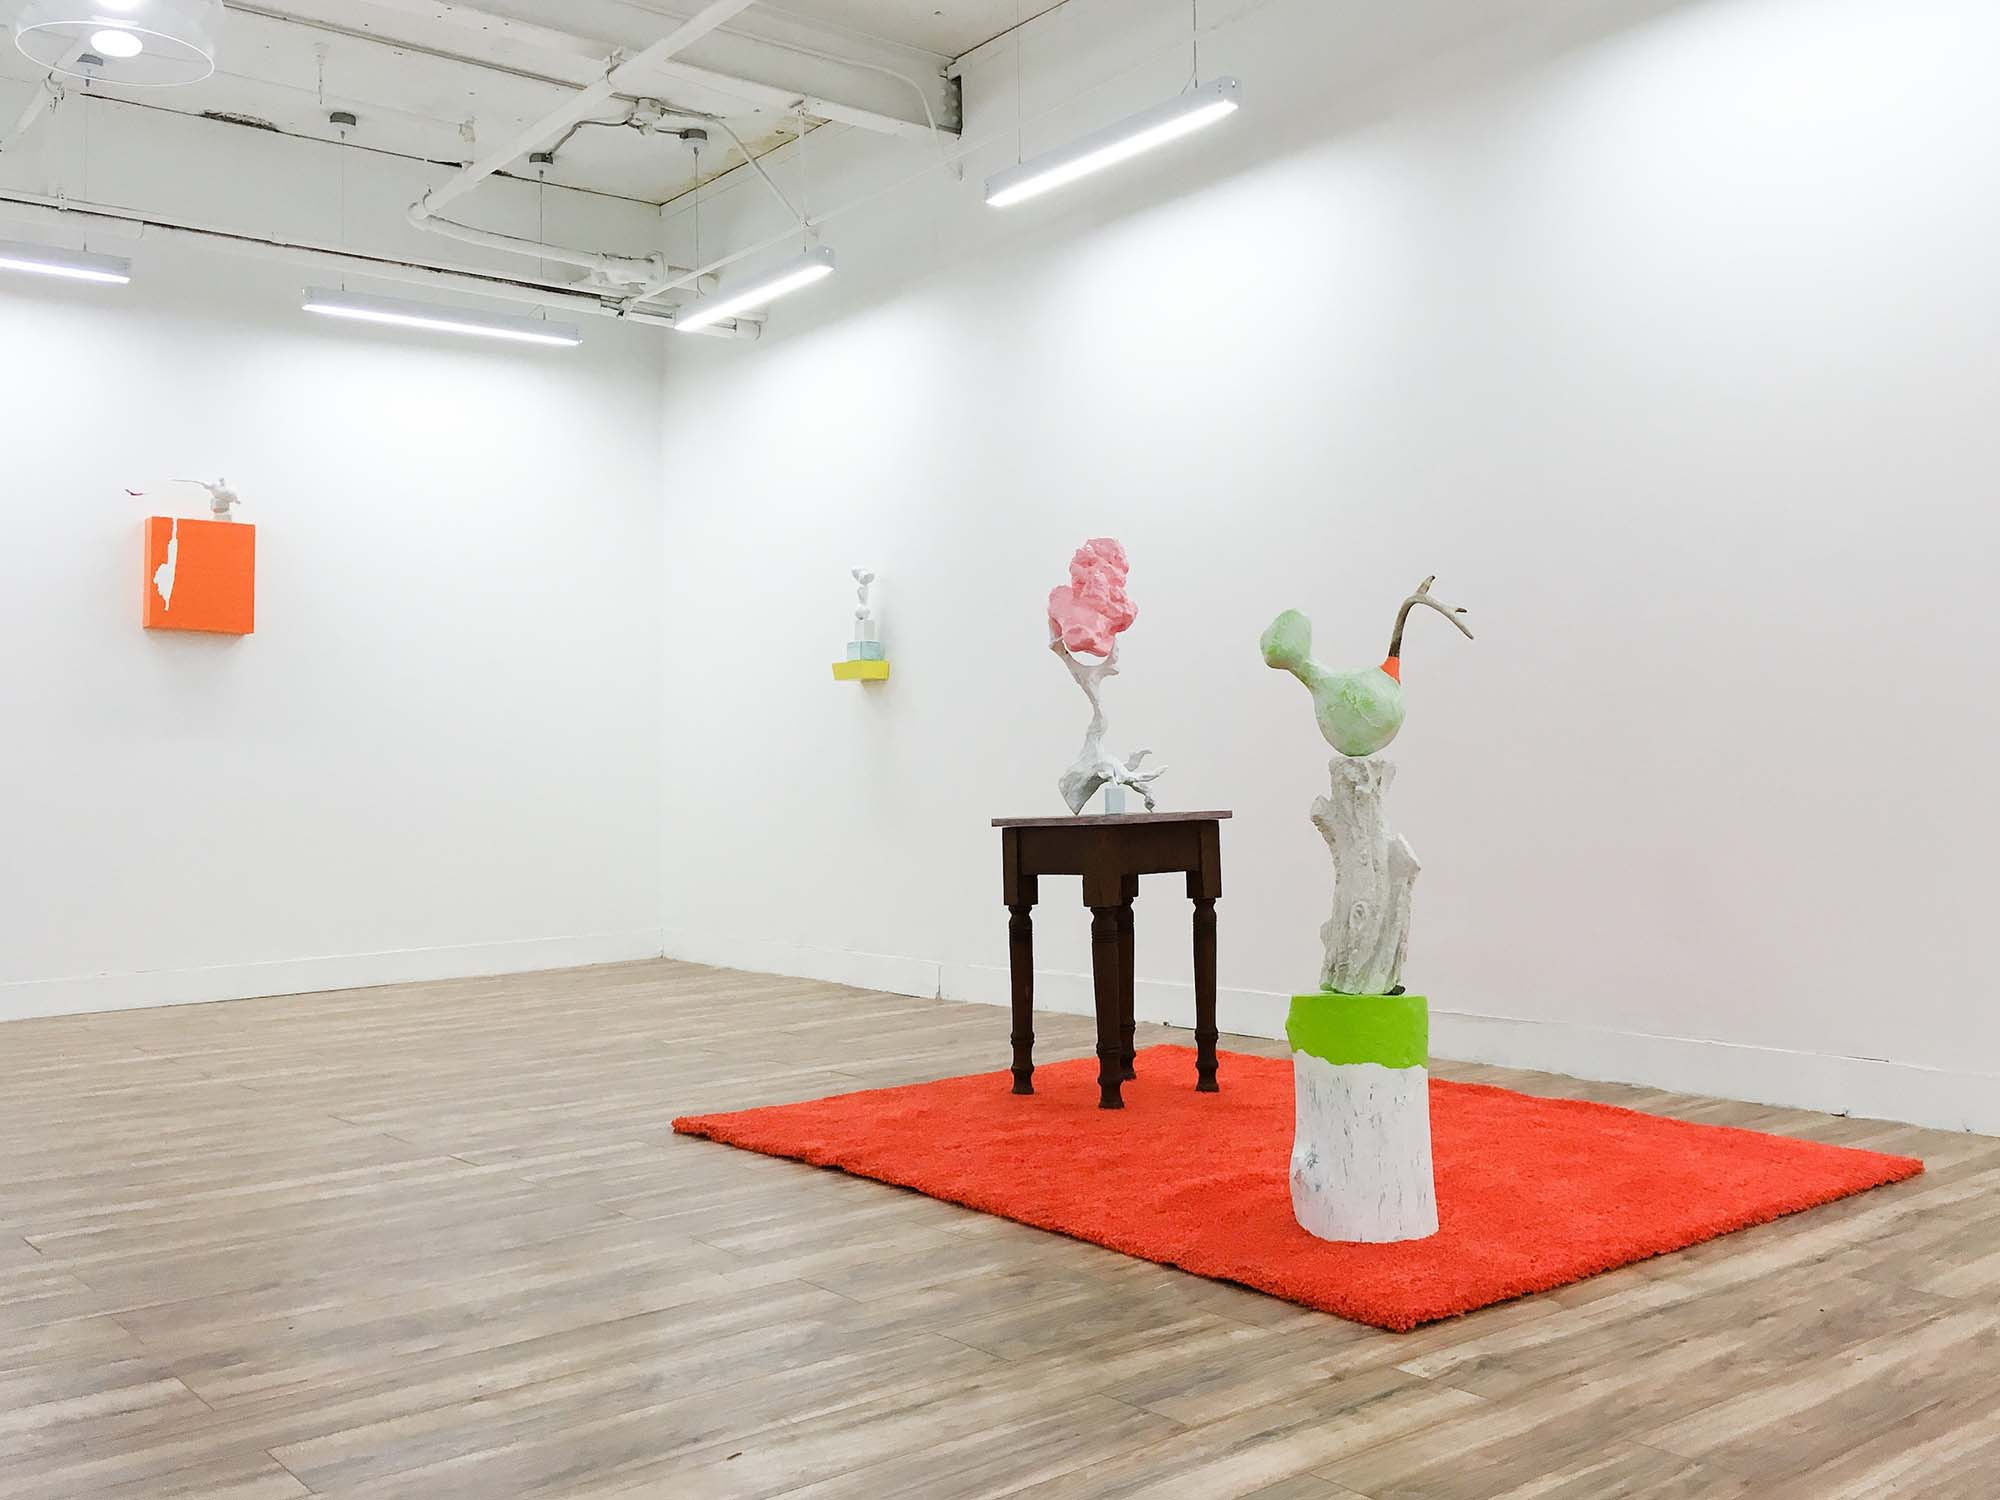 roberley bell, Then Again, installation view Kaplan Contemporary 2018